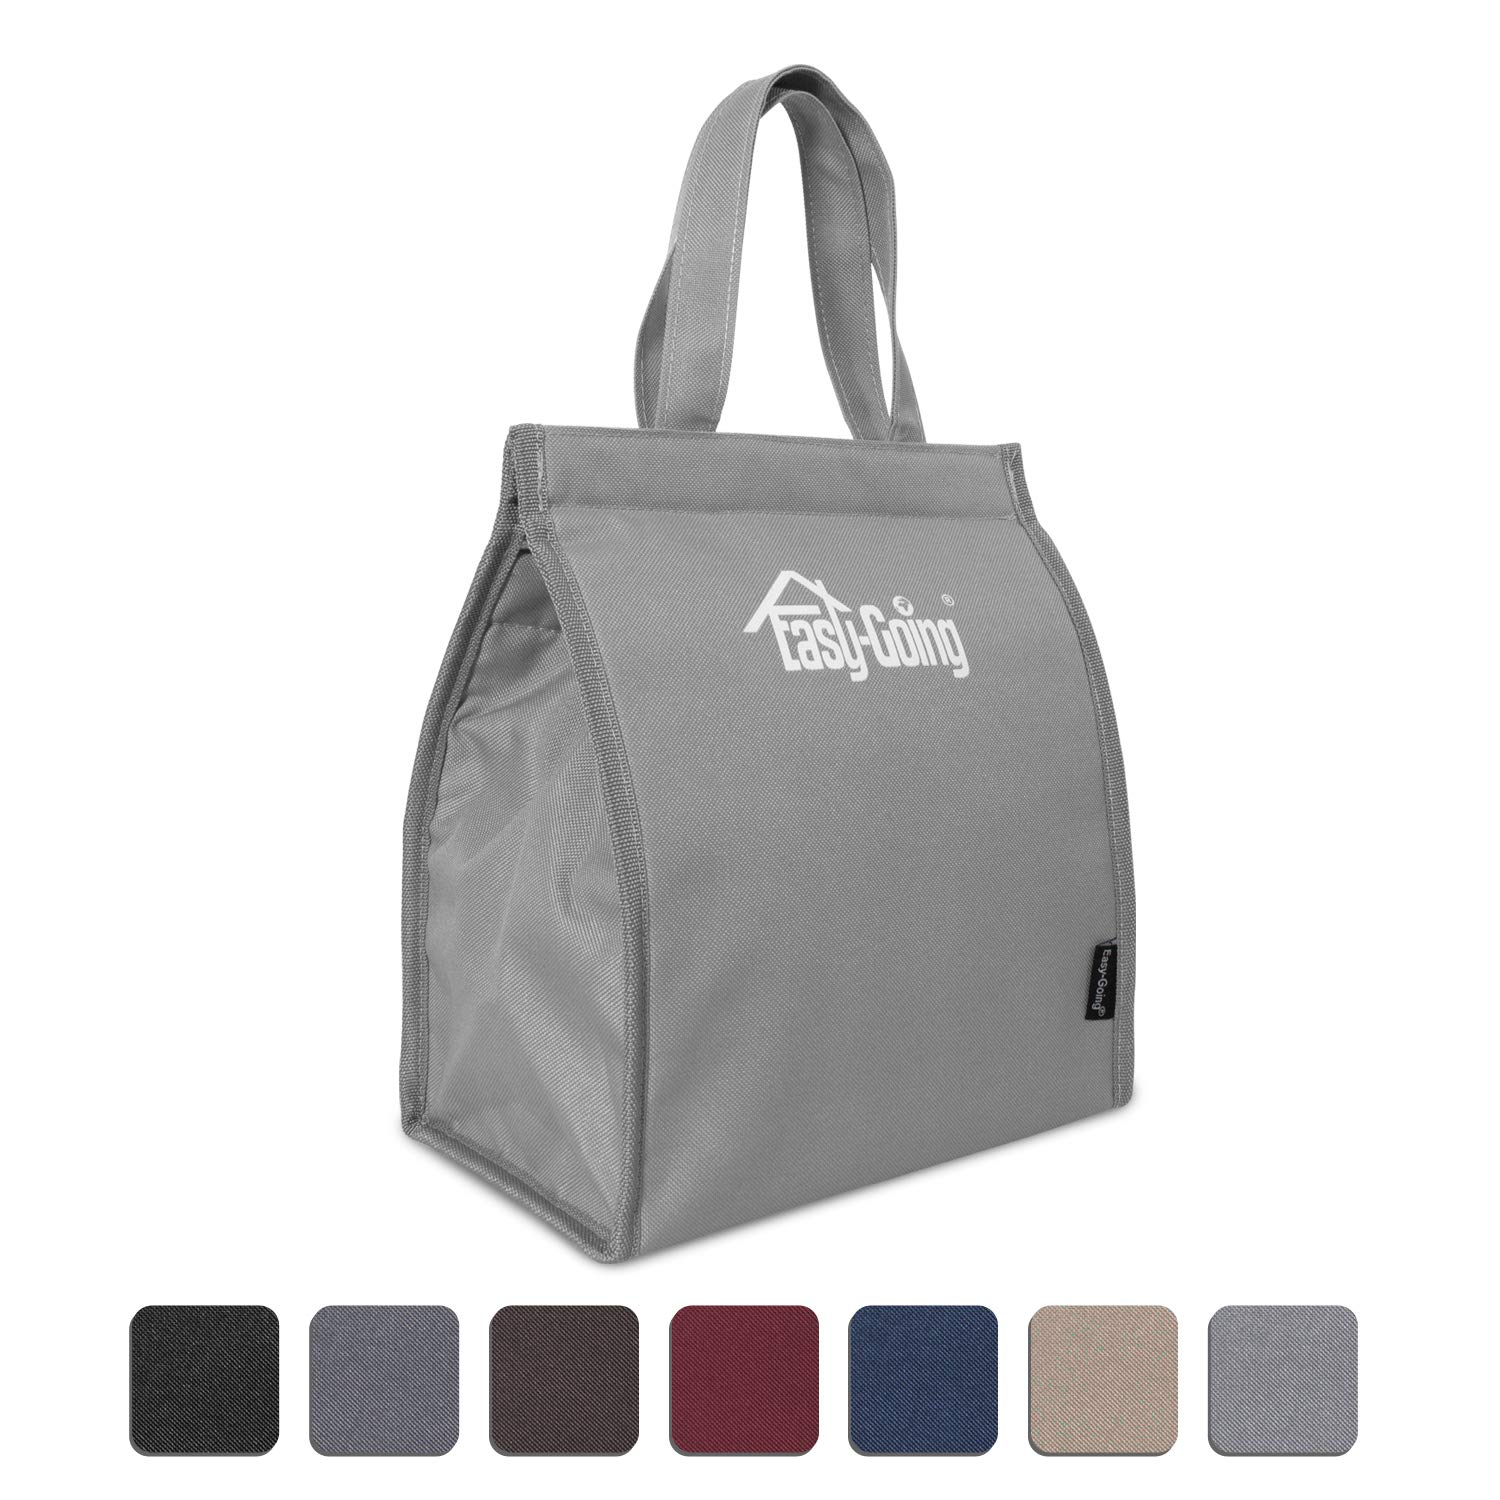 Reusable Insulated bag for hot and cold food, Foldable, Waterproof, Heavy Duty, Eco-Friendly, Insulated Bag for Food Delivery, Picnic, Party, Travel, BBQ (S,Light Gray)